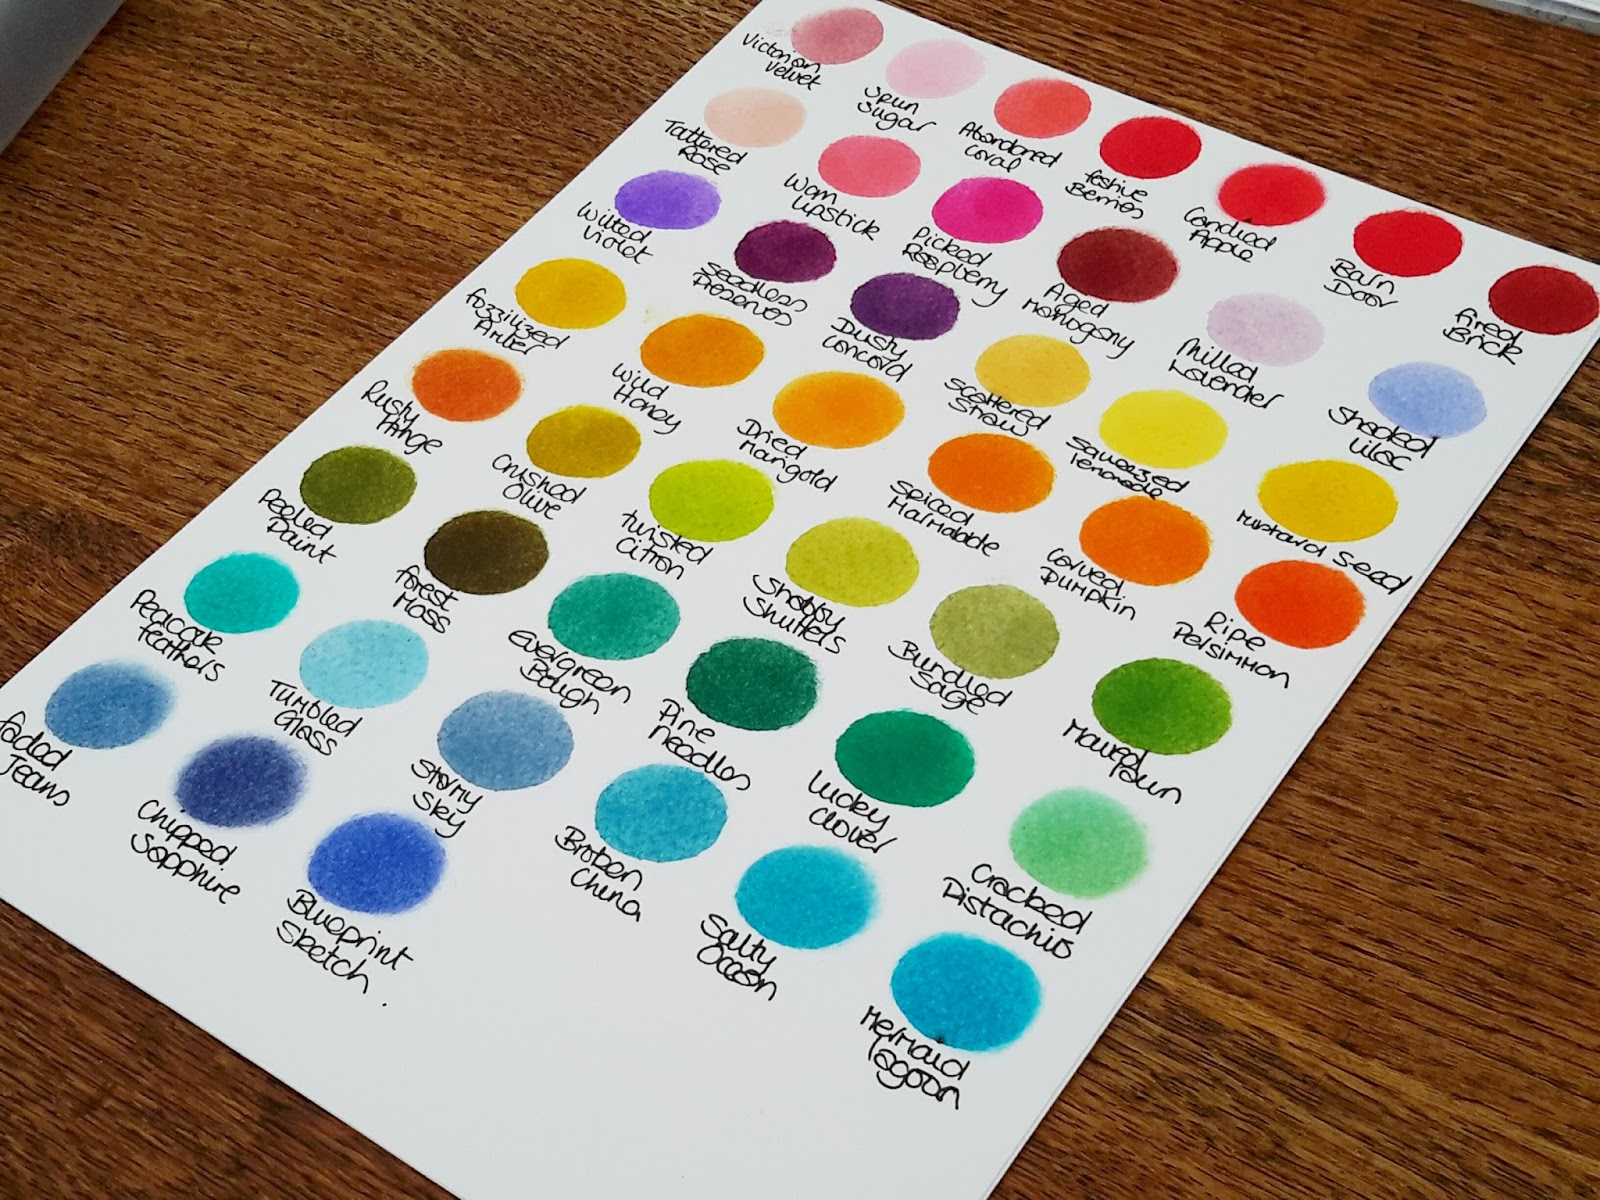 Janeys cards inexpensive inks storage colour charts so when ever i want to use distress inks the whole collection is together colour chart to hand the tools and im ready to go nvjuhfo Image collections